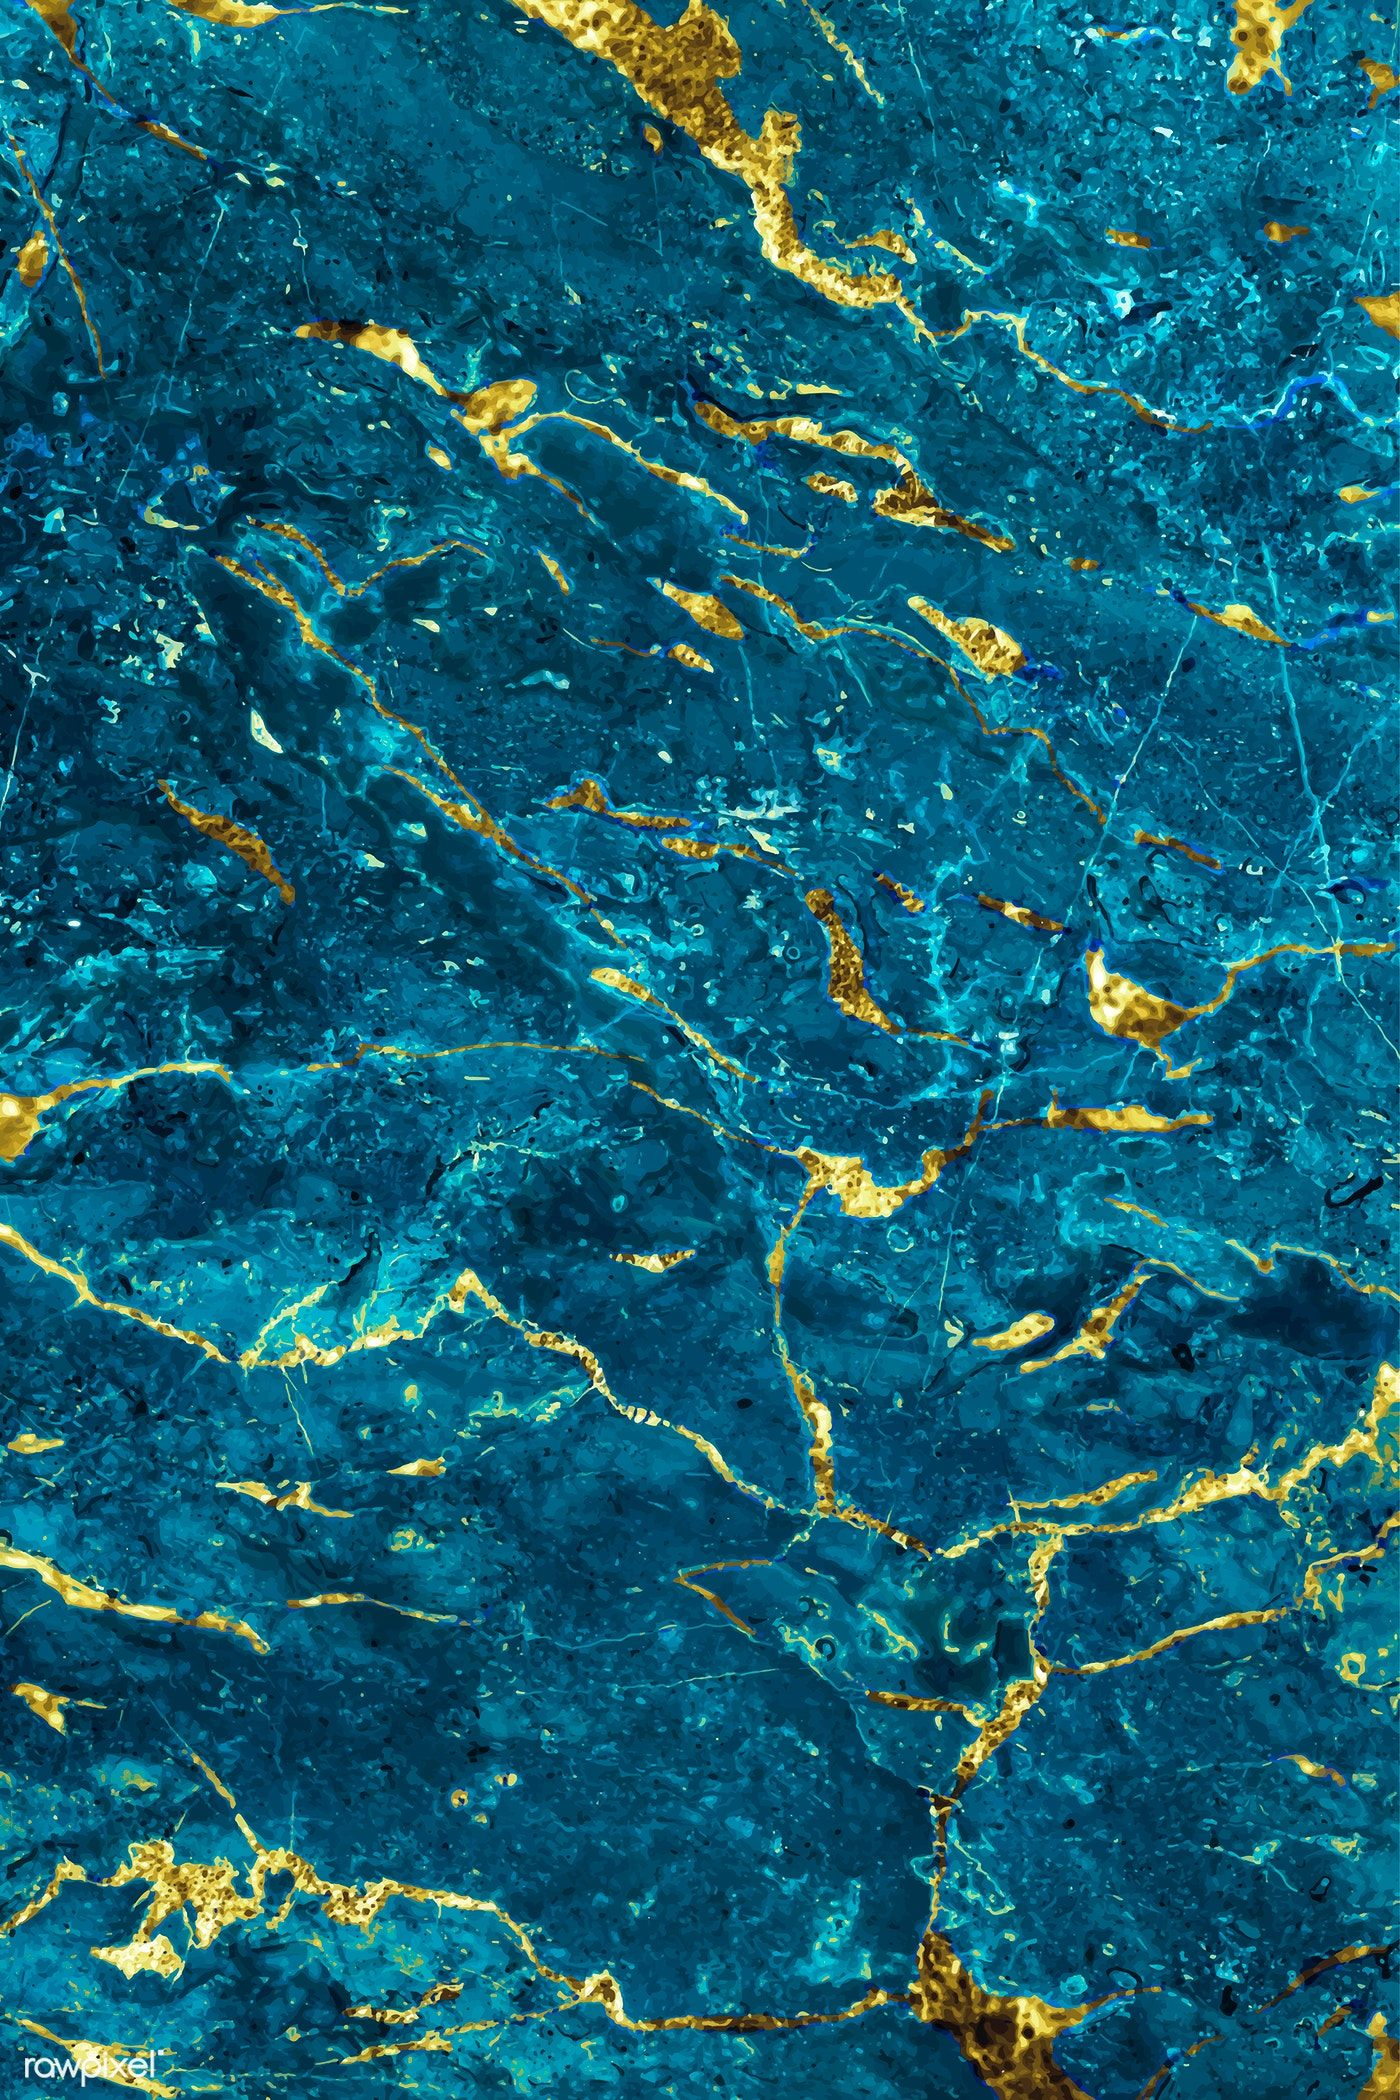 Free download Blue and gold marble textured background ...